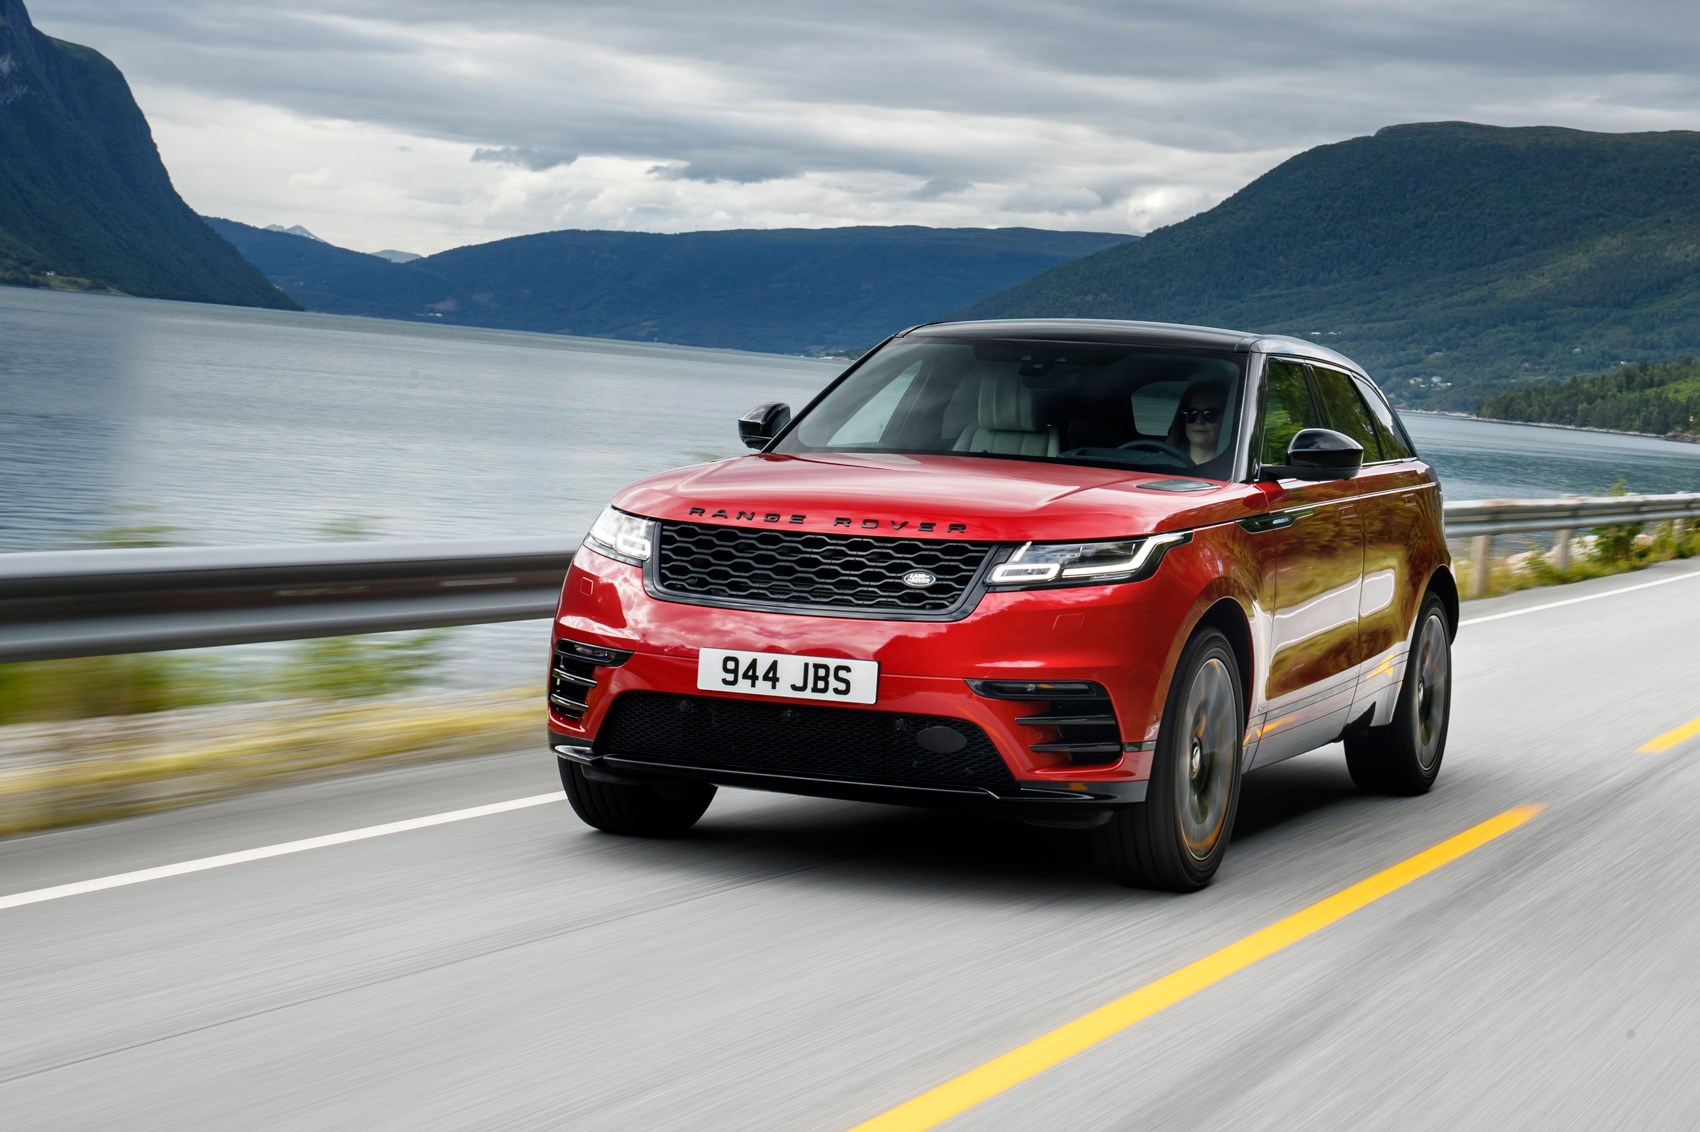 range rover velar 2017 review by car magazine. Black Bedroom Furniture Sets. Home Design Ideas